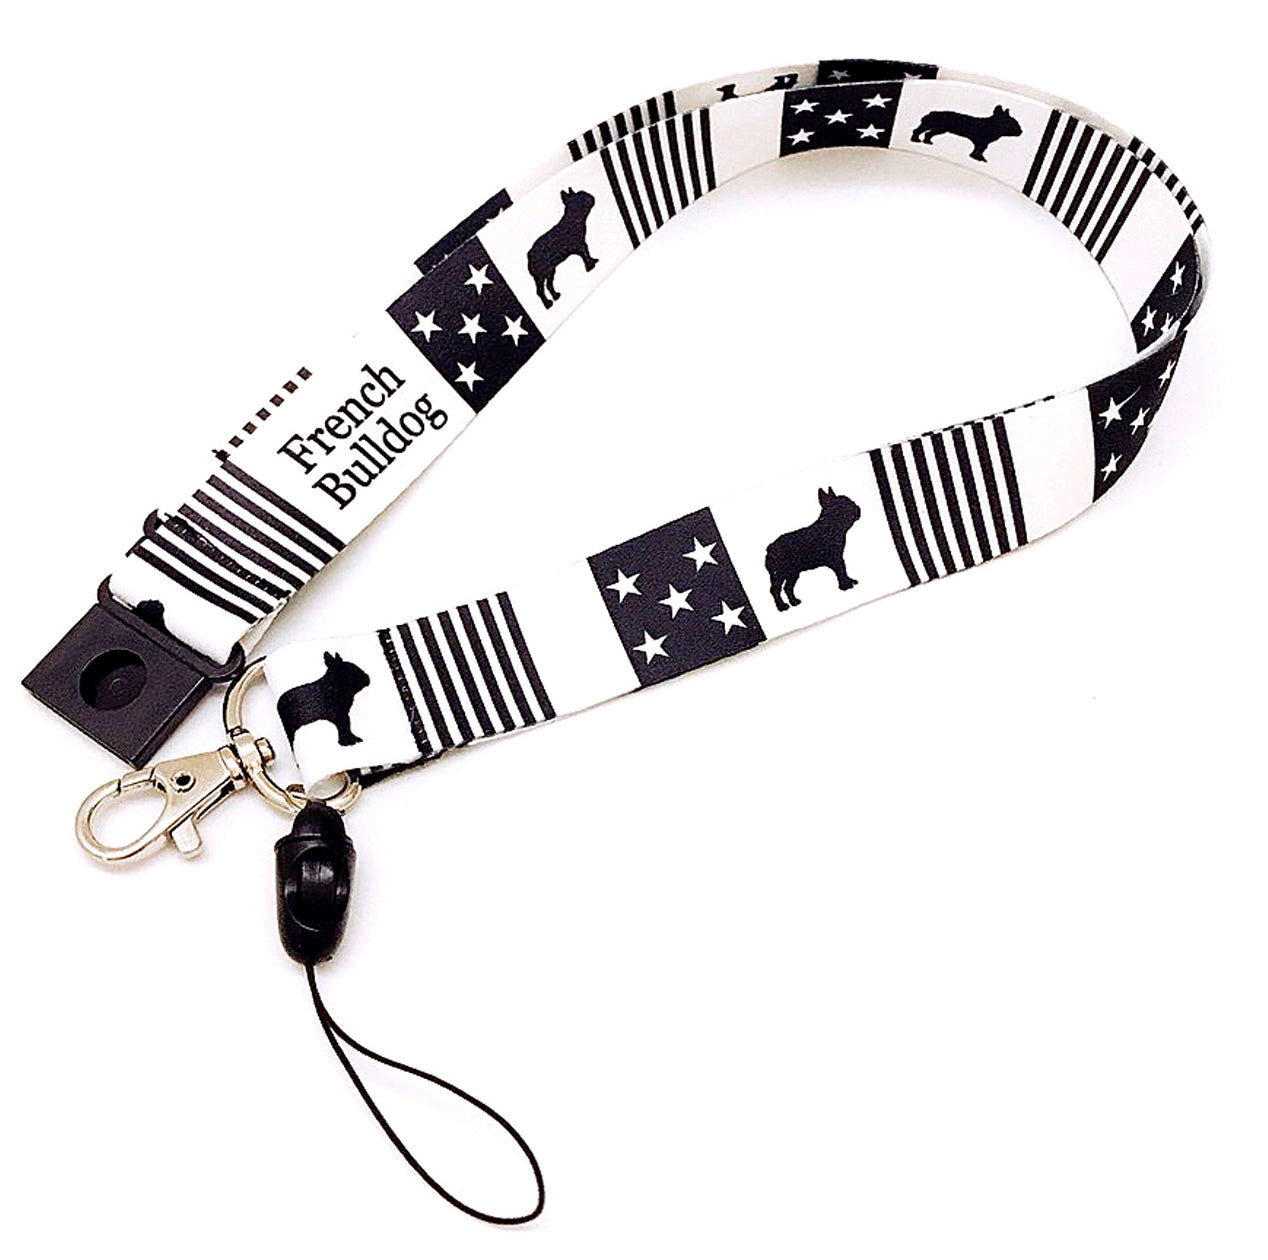 "Frenchic French Bulldog Fabric Lanyard Neck Strap with Safety Breakaway Clip Black Stars and Stripe Wide 1"" for ID Card Mobile Phone Badge Holder,"